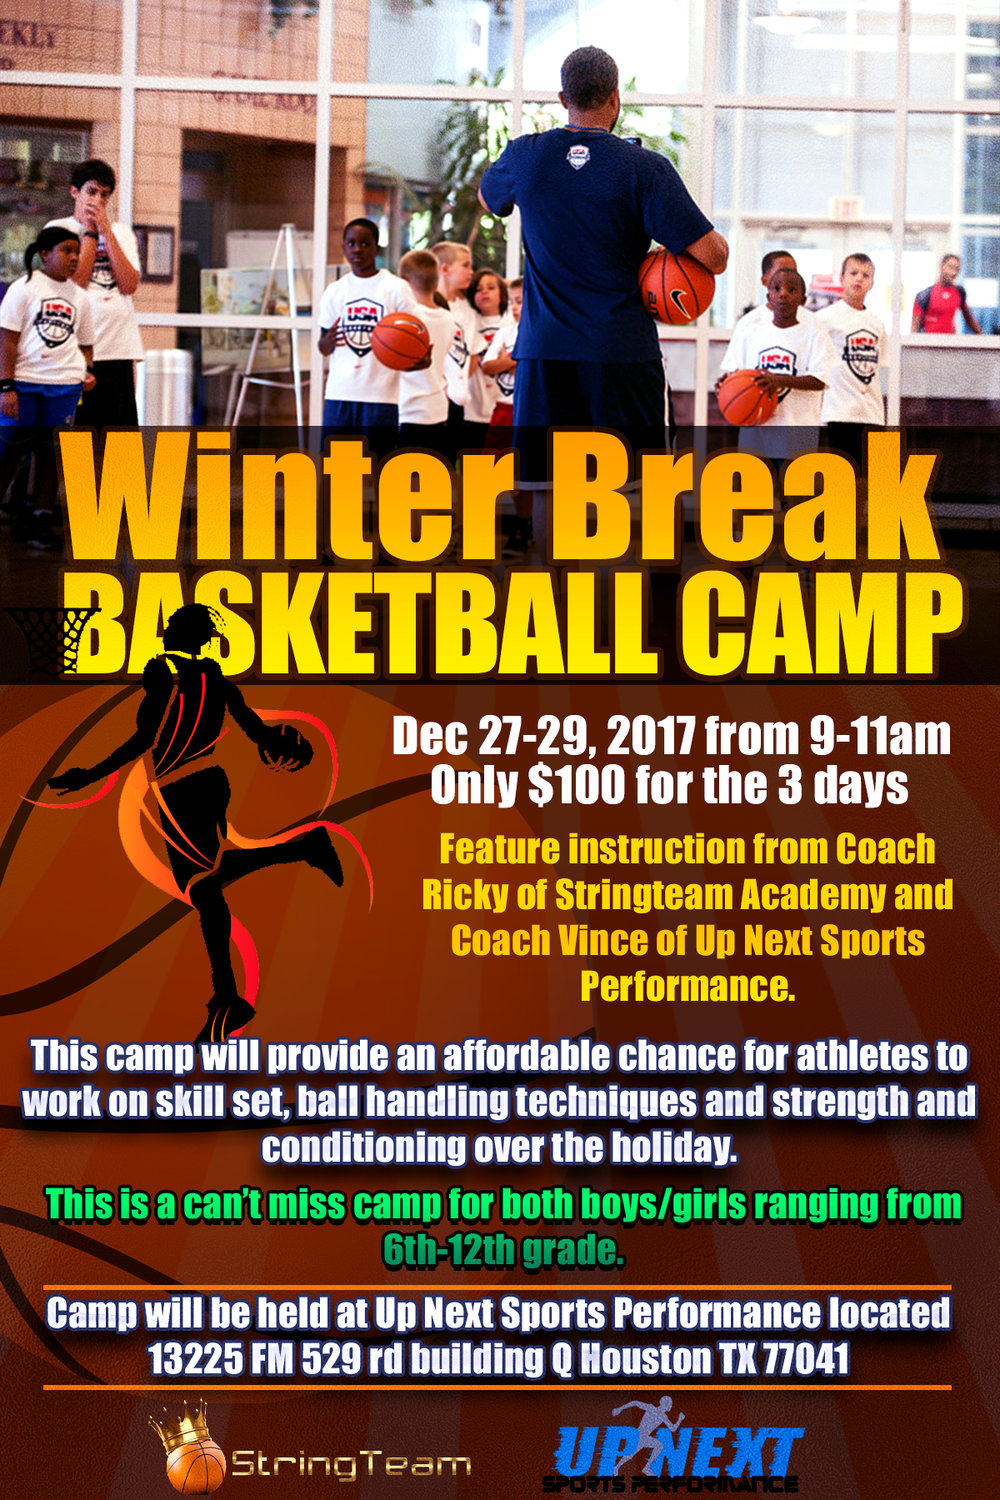 Winter Break Basketball Camp Dec 27-29, 2017 from 9-11am. Cost is only $100 for the 3 days. Will feature instruction from Coach Ricky Huckaby of Stringteam Academy and Coach Vince Gilreath of Up Next Sports Performance. This camp will provide an affordable chance for athletes to work on skill set, ball handling techniques and strength and conditioning over the holiday. This is a can't miss camp for both boys/girls ranging from 6th-12th grades.